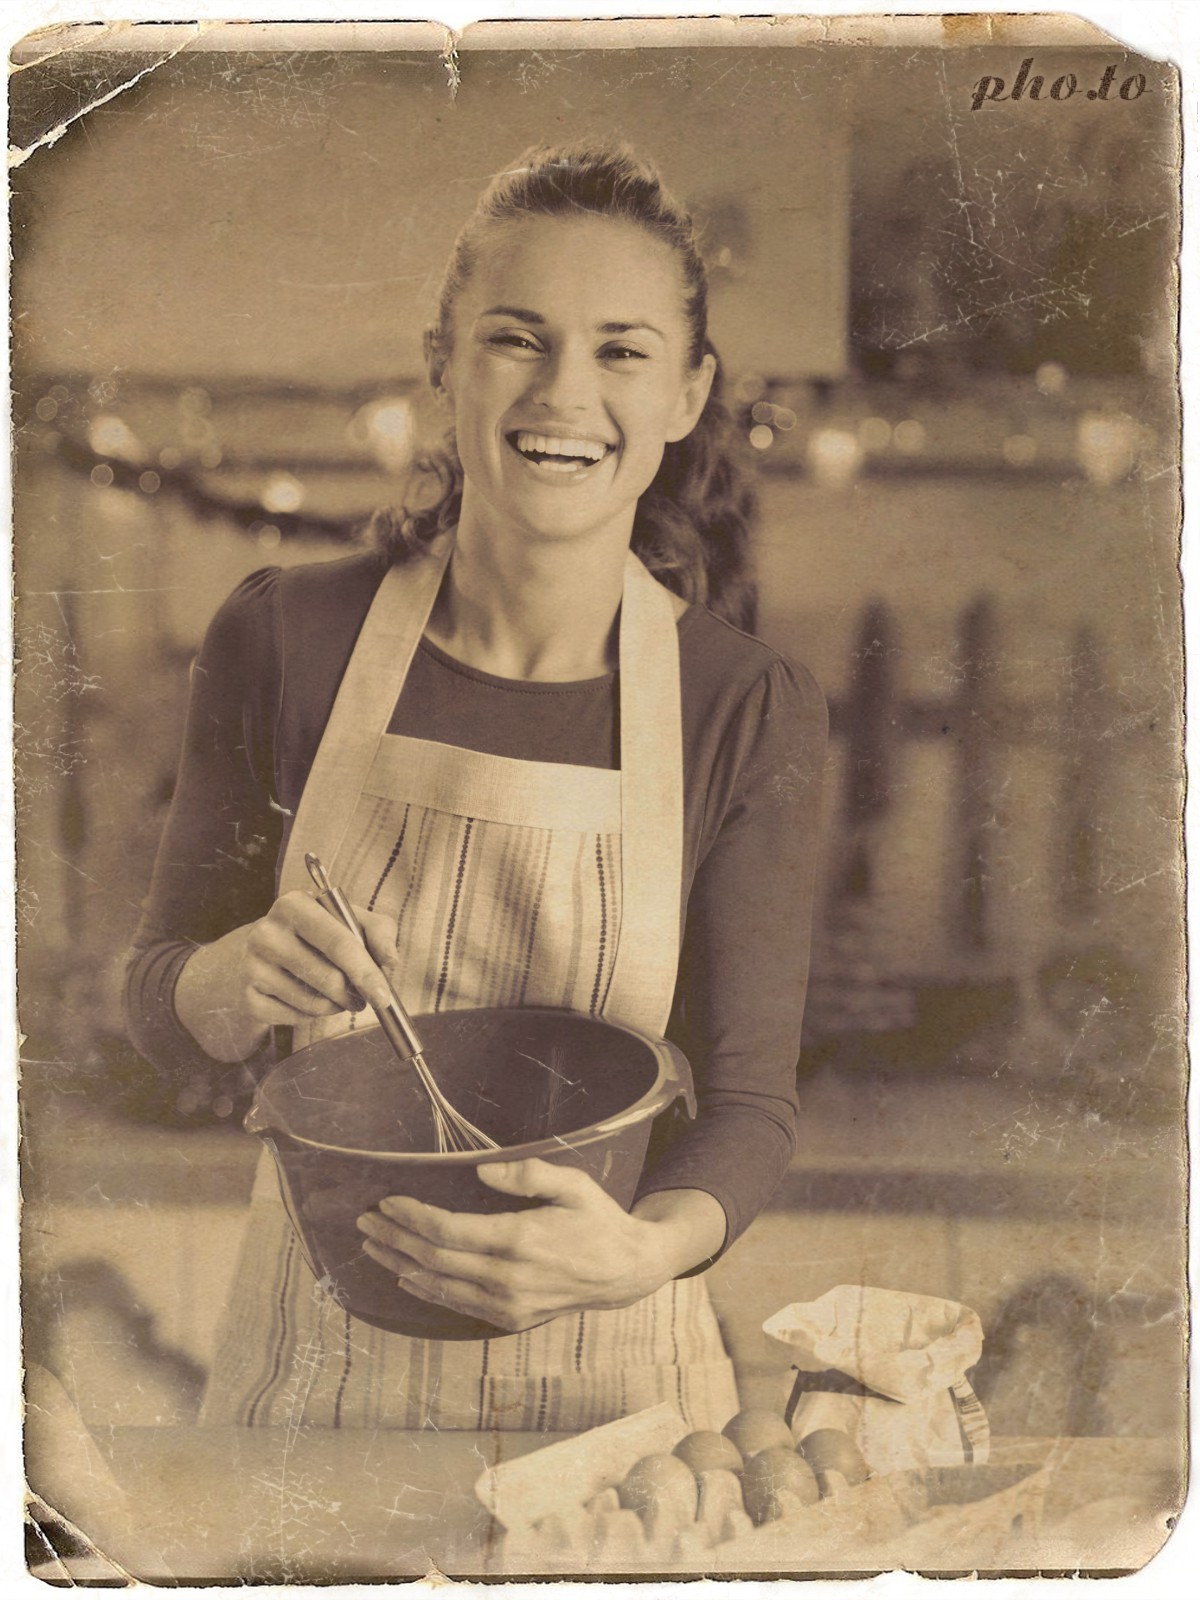 Vintage photo of a woman cooking aged online using photo effect